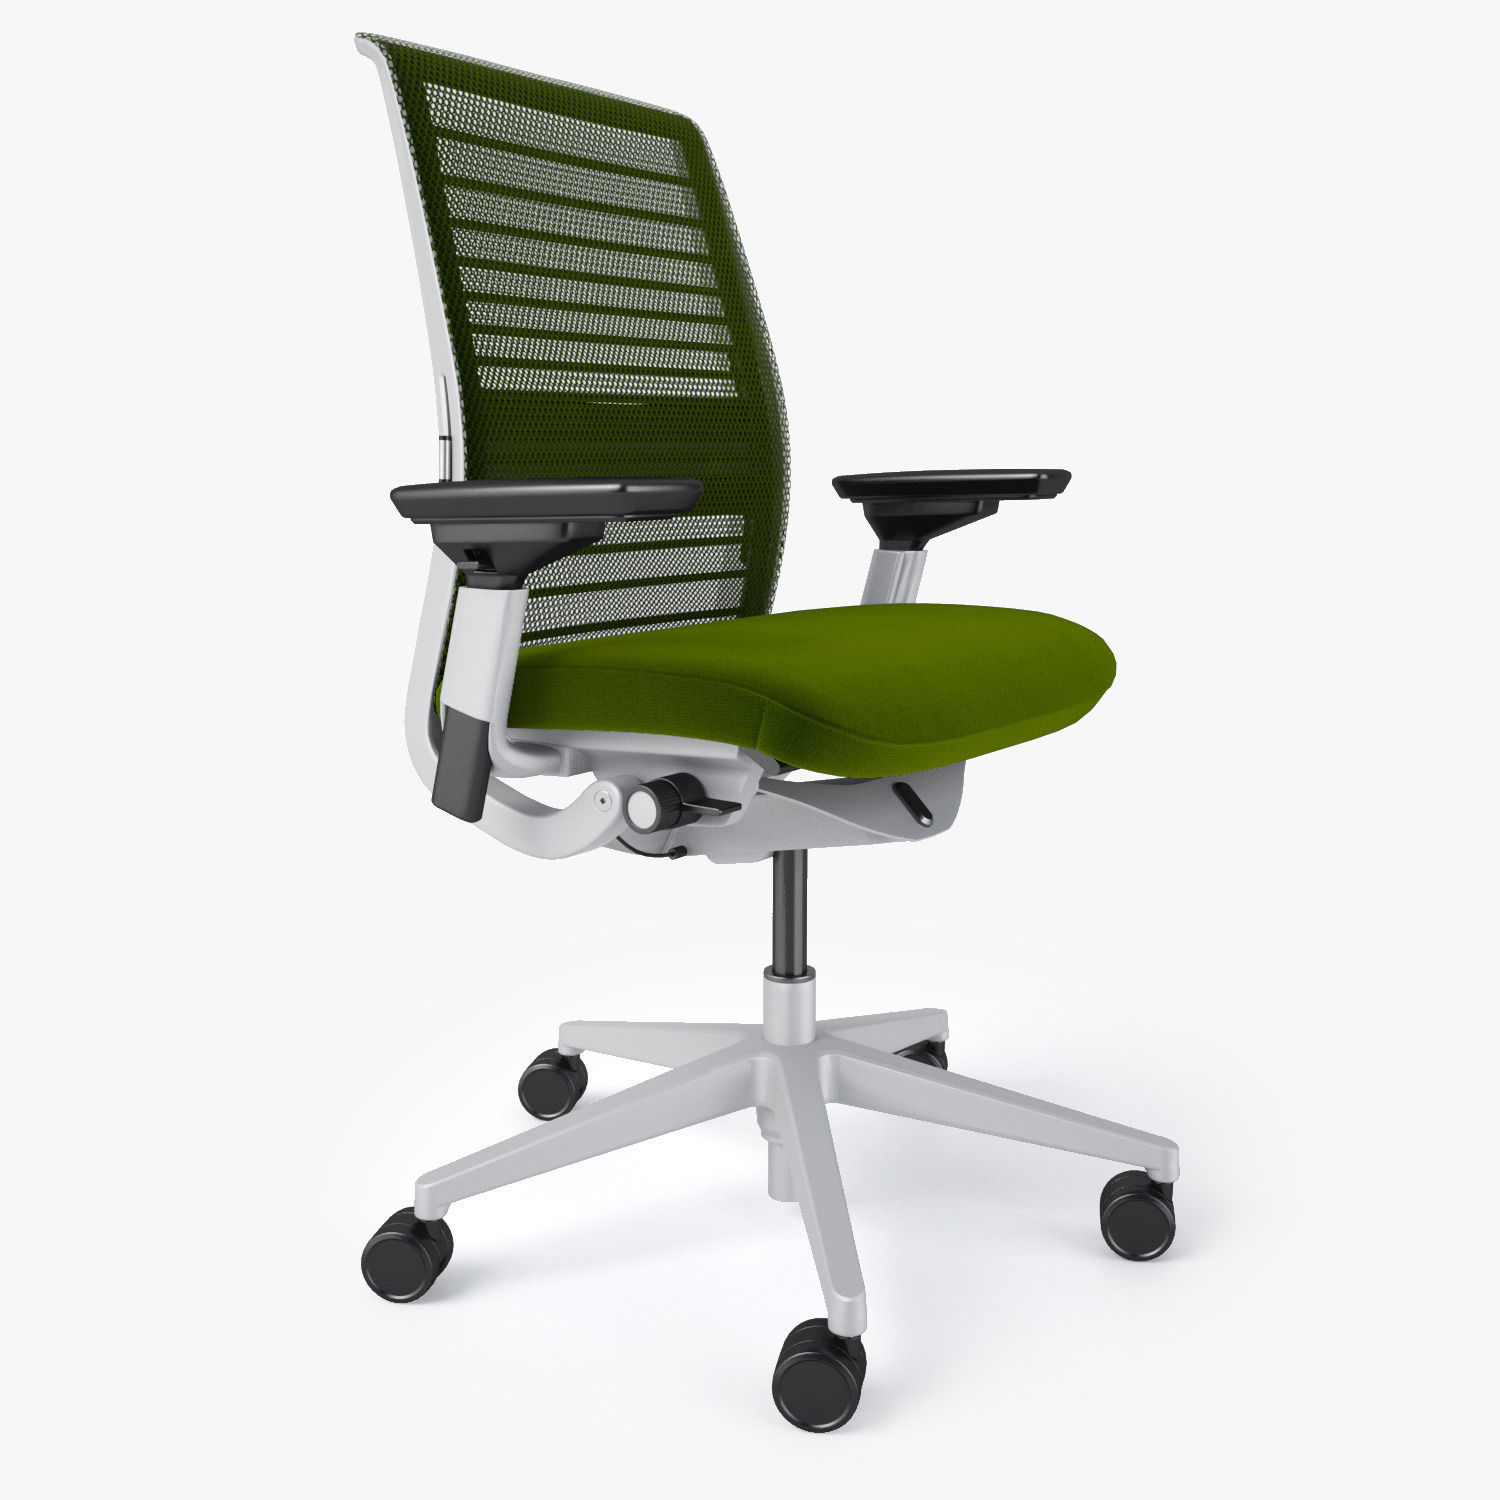 steelcase think office chair. Steelcase Think Office Chair 3d Model Max Obj Fbx Mtl 5